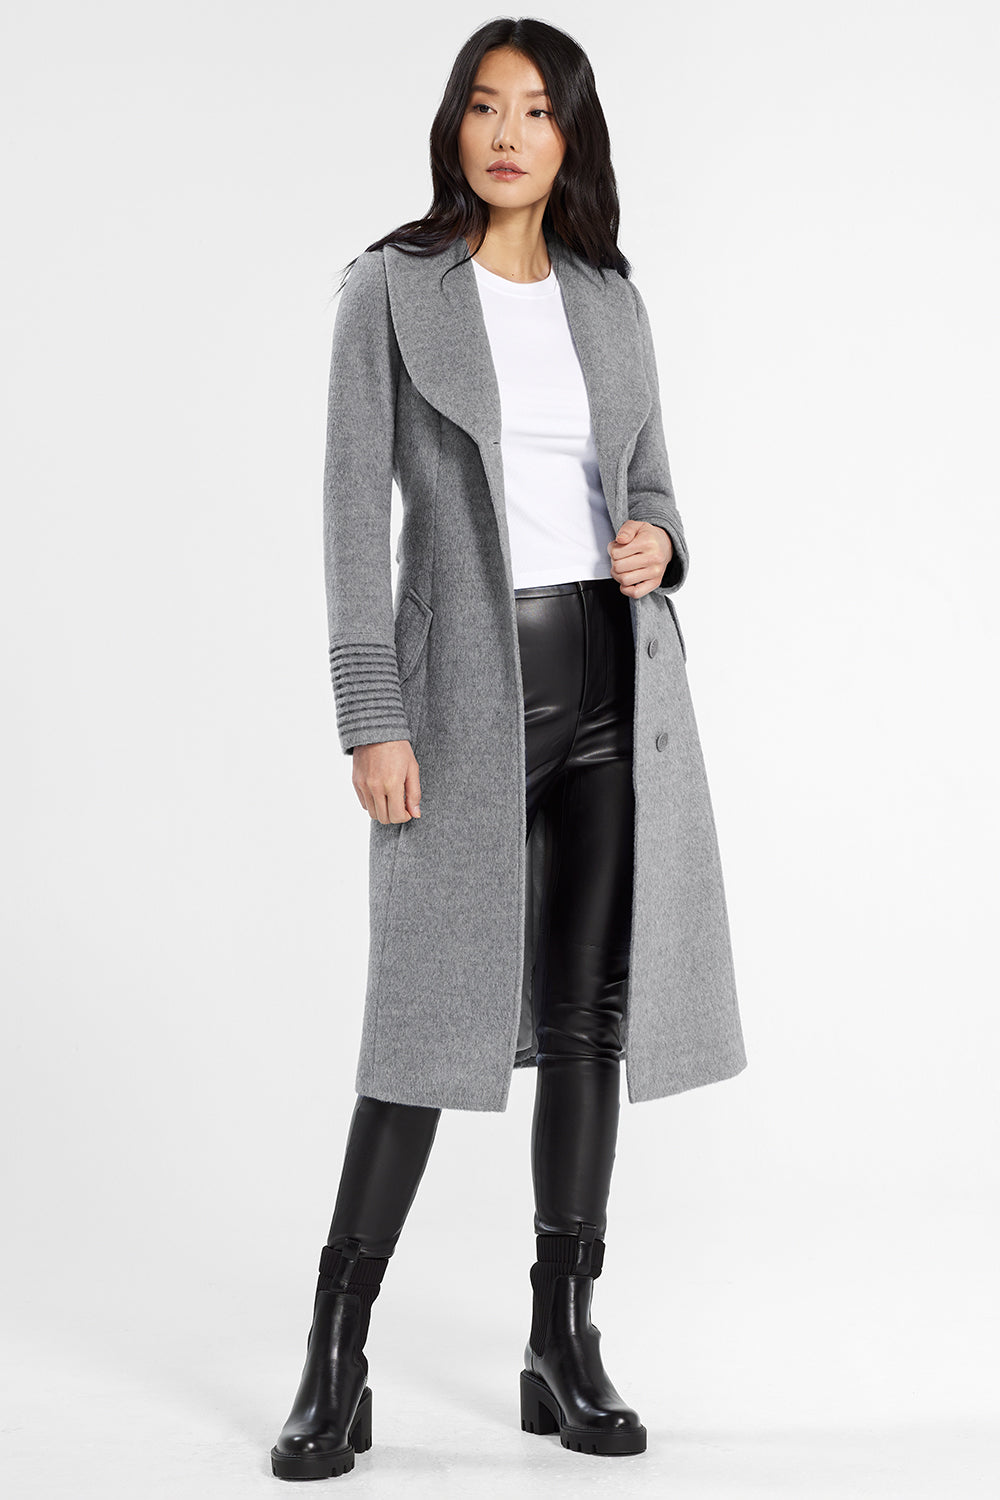 Sentaler Classic Long Coat with Shawl Collar featured in Baby Alpaca and available in Shale Grey. Seen open.